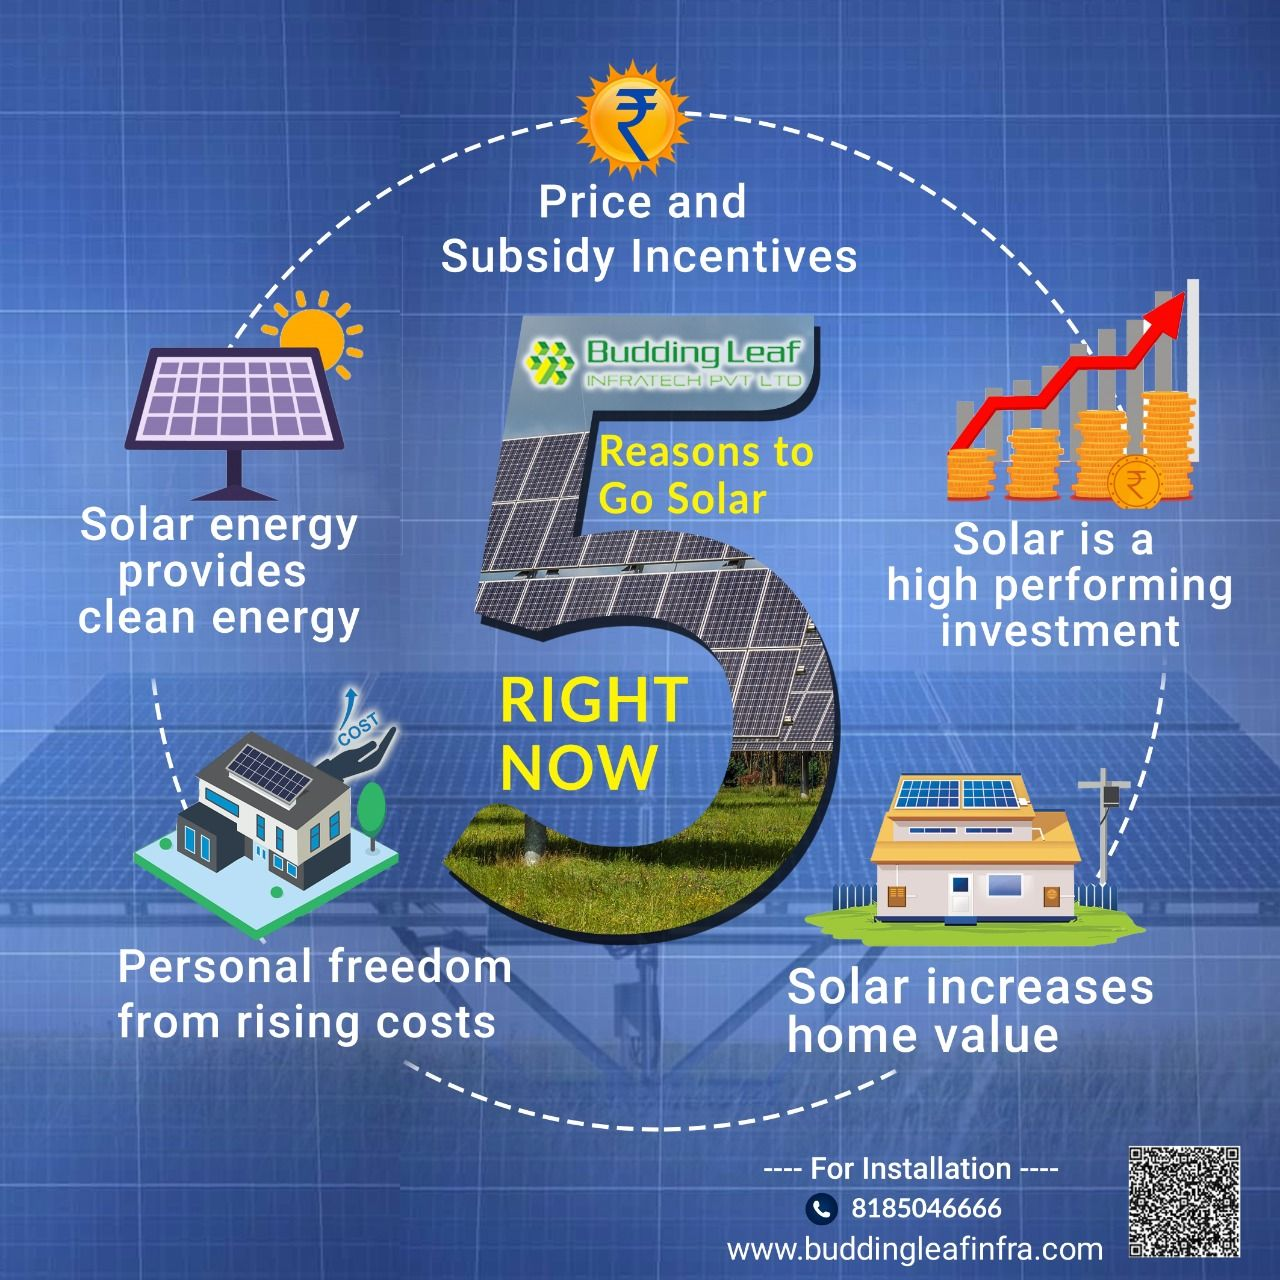 Solar Panels In 2020 Solar Solutions Solar Energy Business Solar Energy